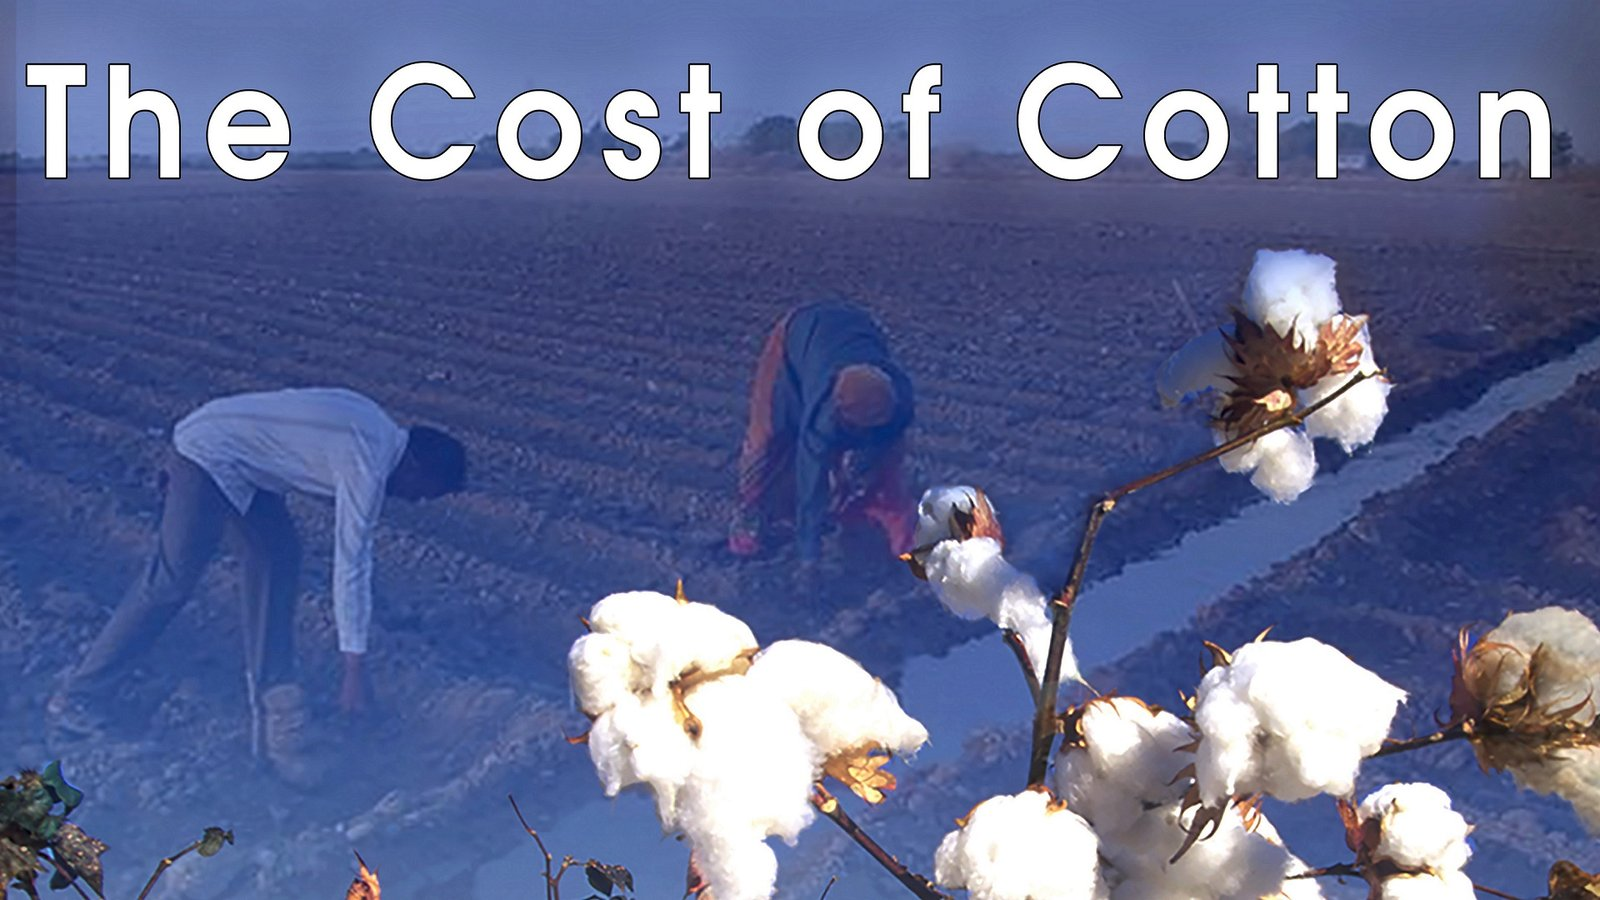 The Cost of Cotton - Questions of Ethics in the Cotton Production Chain